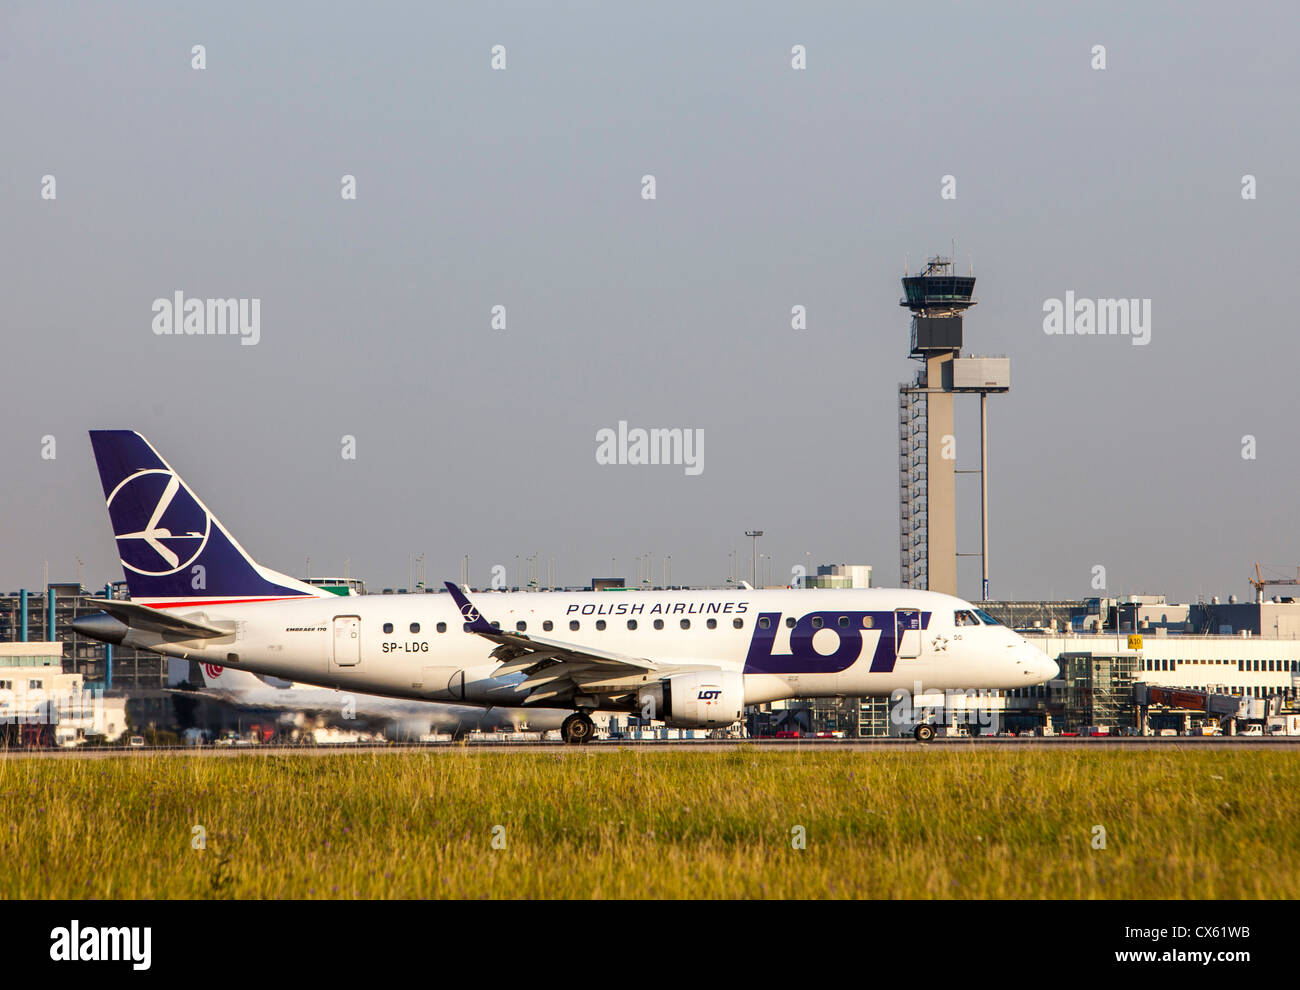 Air planes at Düsseldorf International Airport. Germany, Europe. Polish LOT. - Stock Image